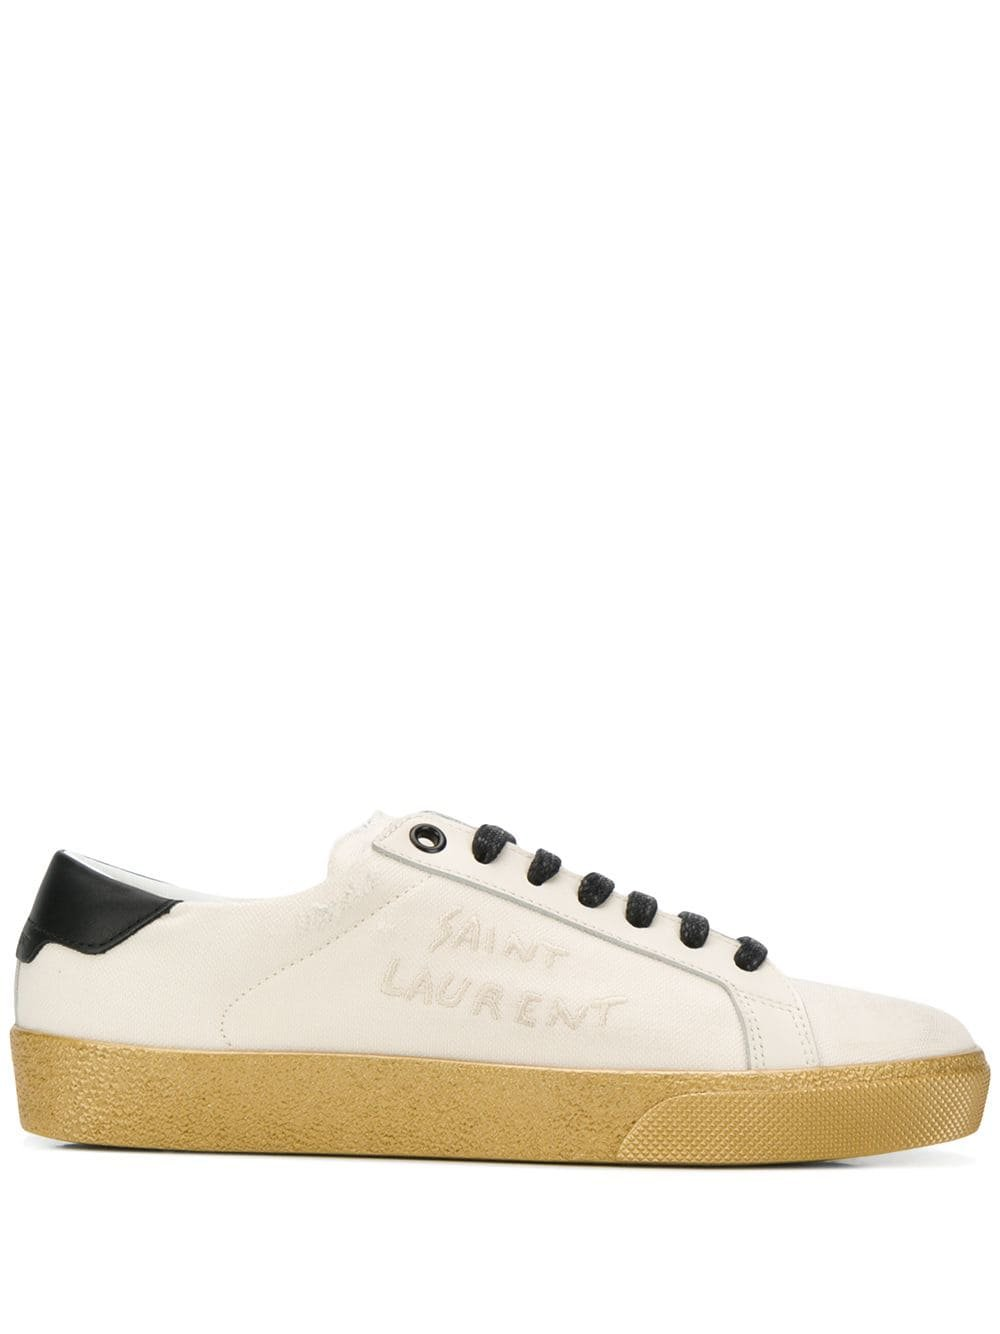 Saint Laurent Distress Sneakers